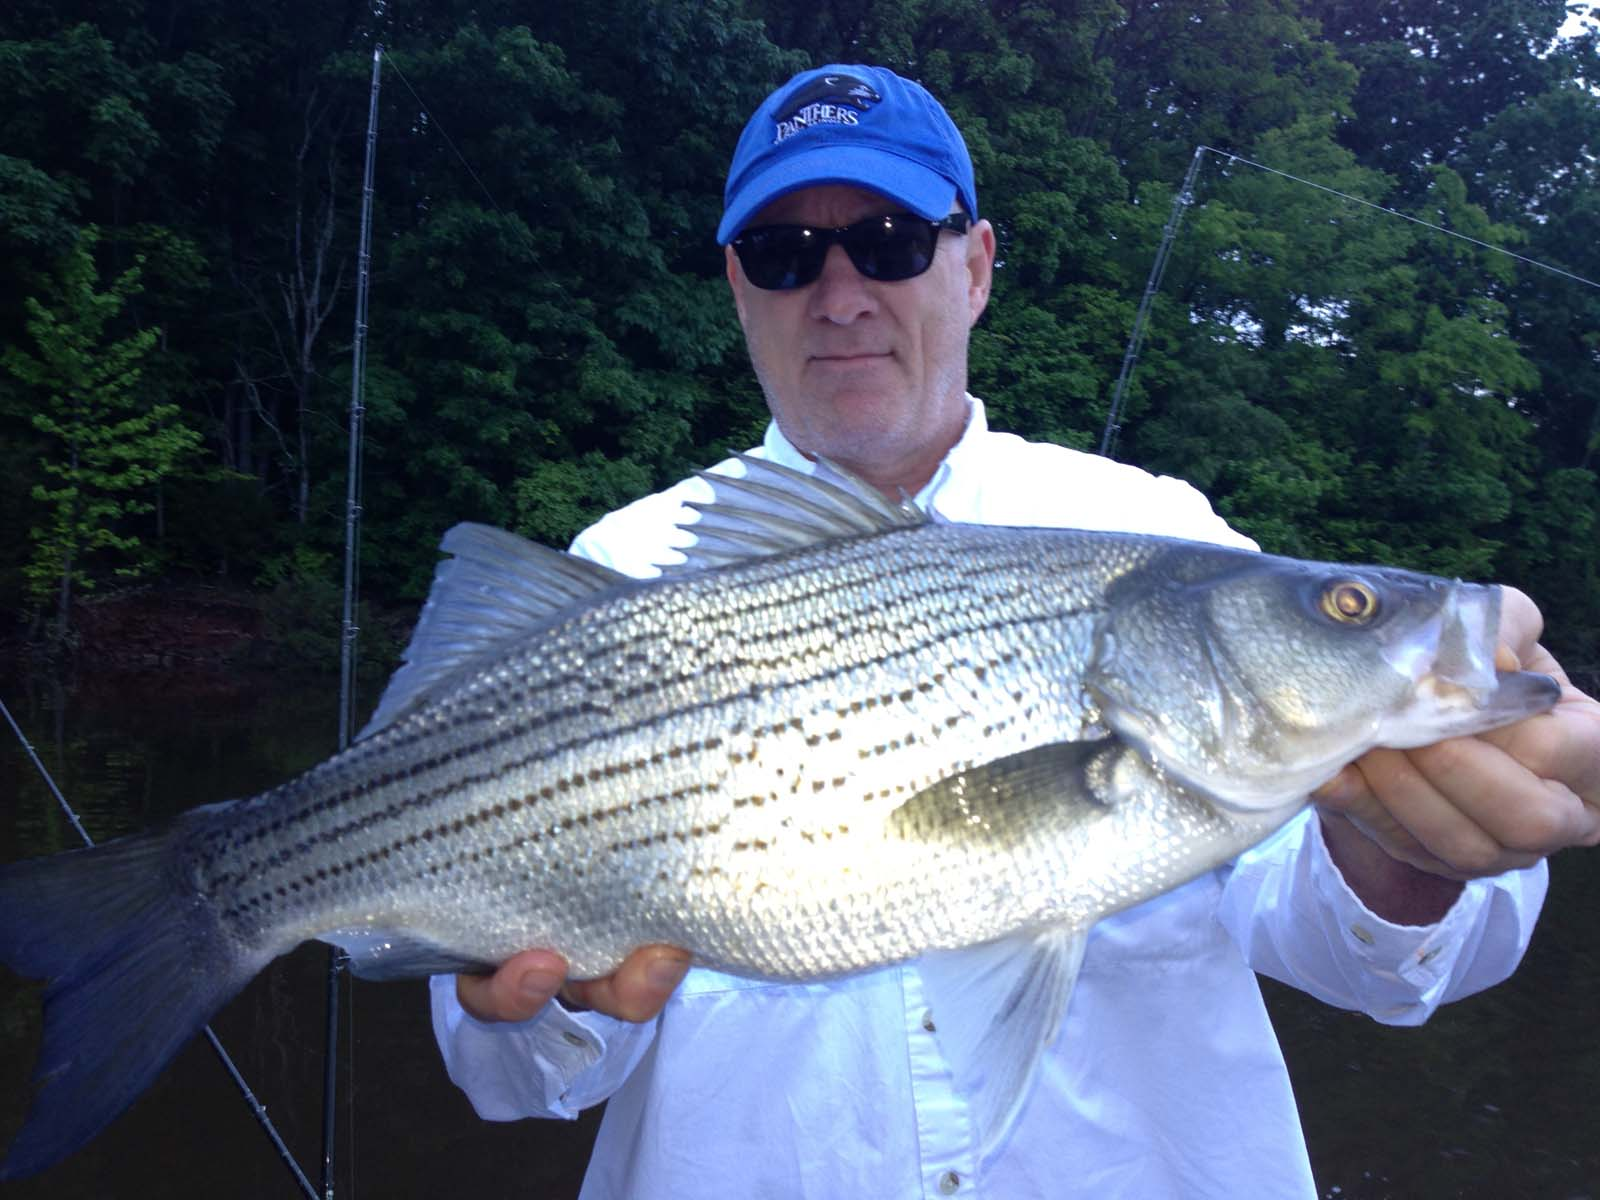 Stripers on tims ford for Tims ford lake fishing report